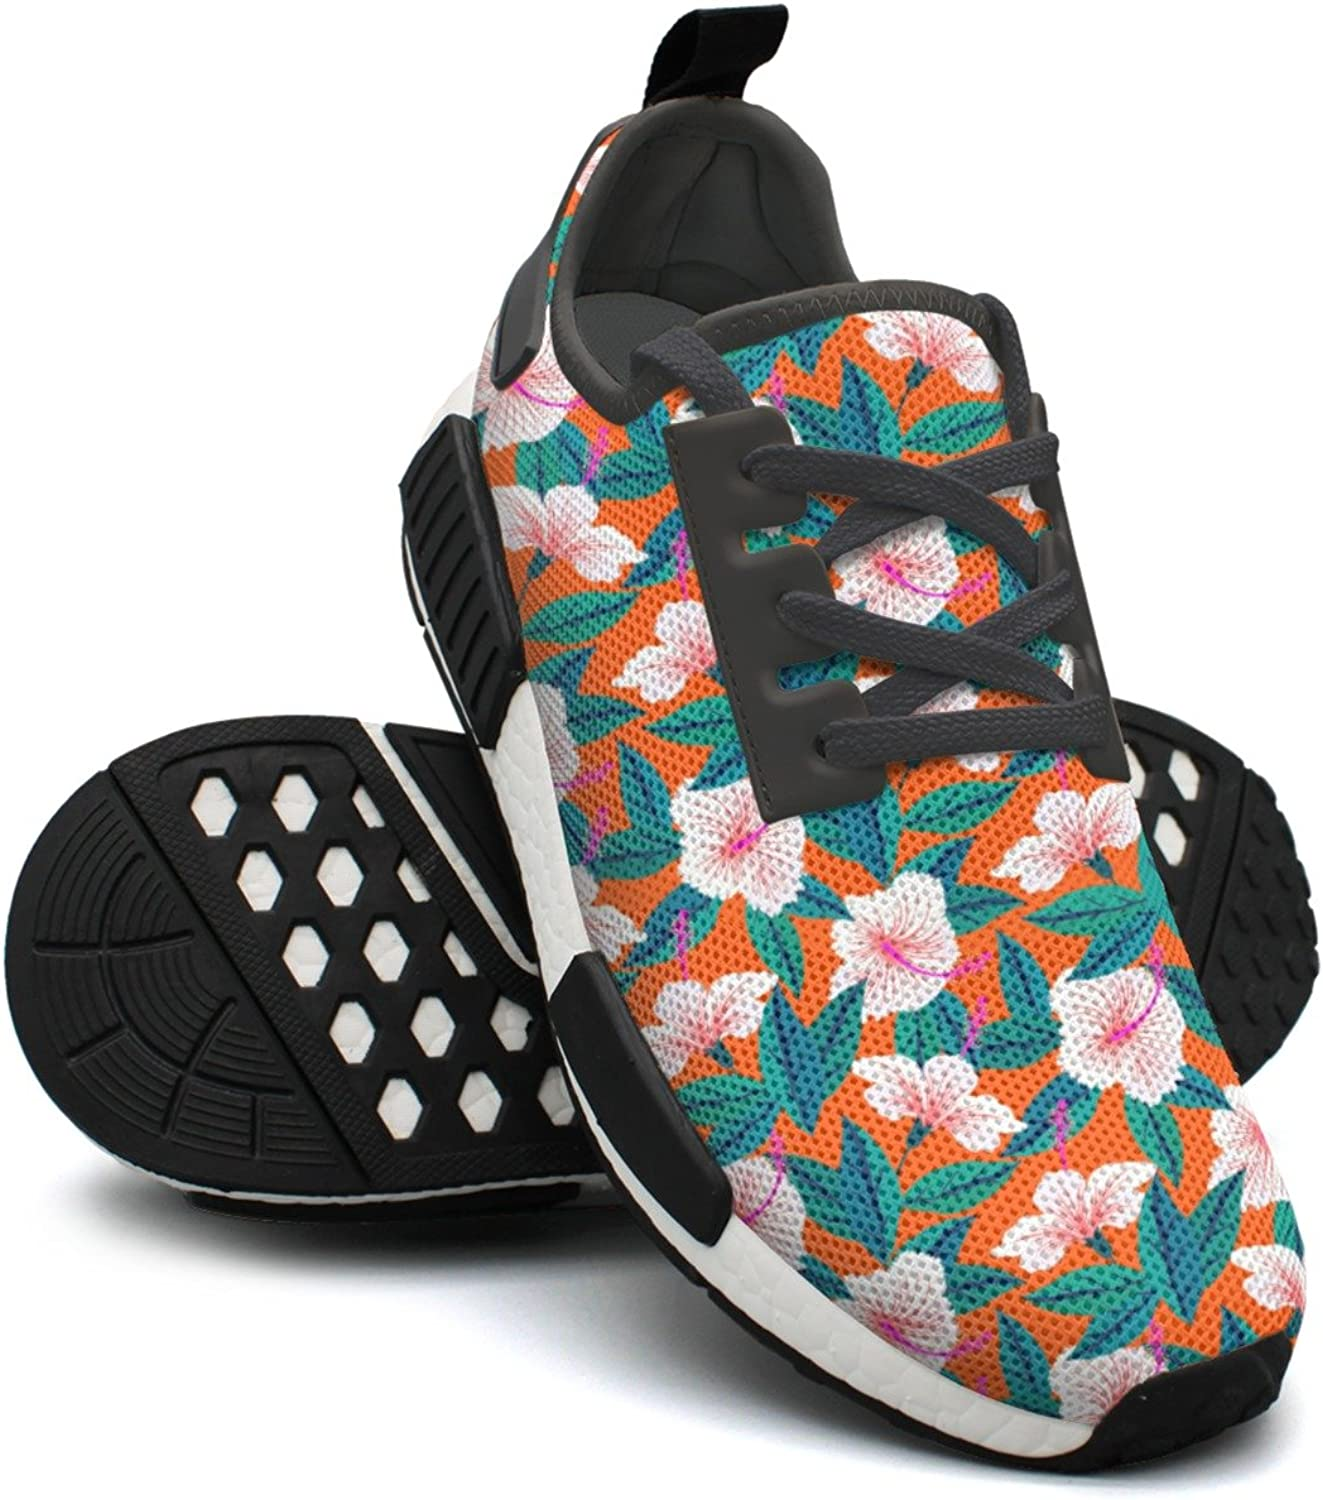 Ououla Tropical Pattern With White Hibiscus Flowers Women Comfortable NMD PK Table Tennis shoes